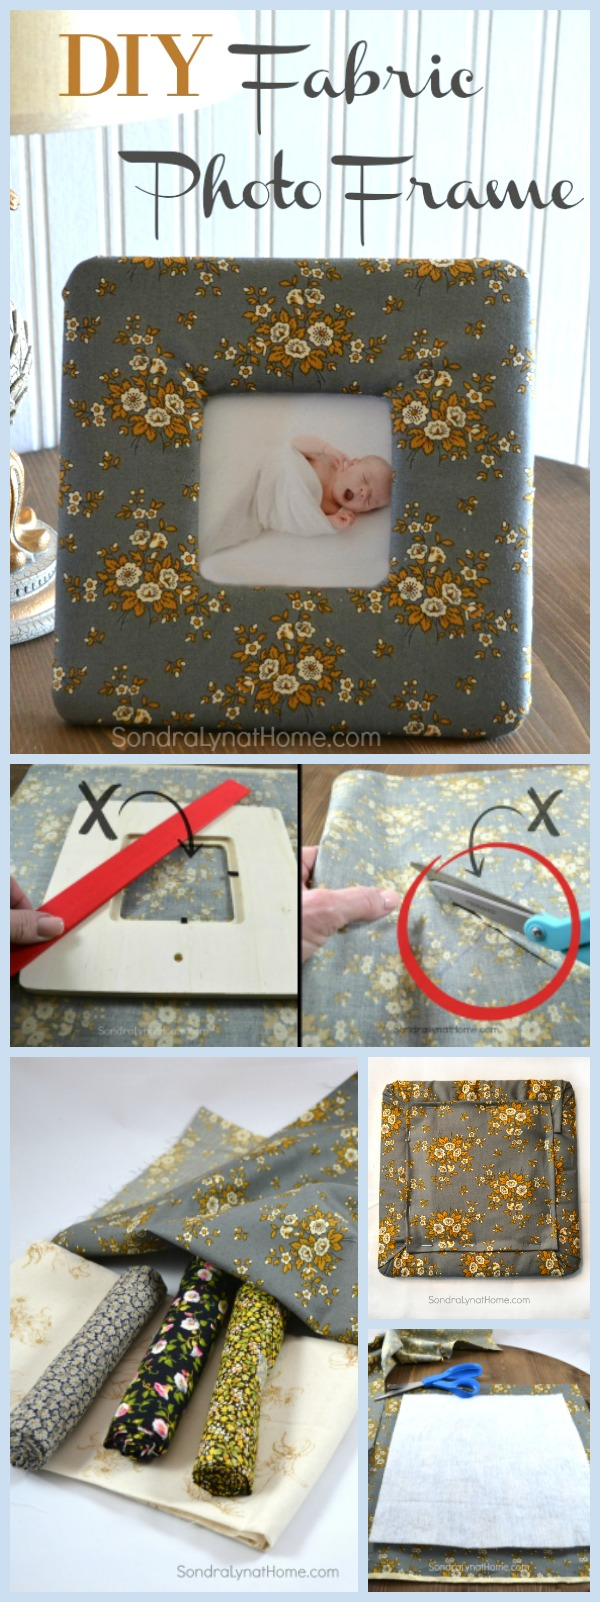 DIY Fabric Photo Frame - Pinnable - Sondra Lyn at Home.com